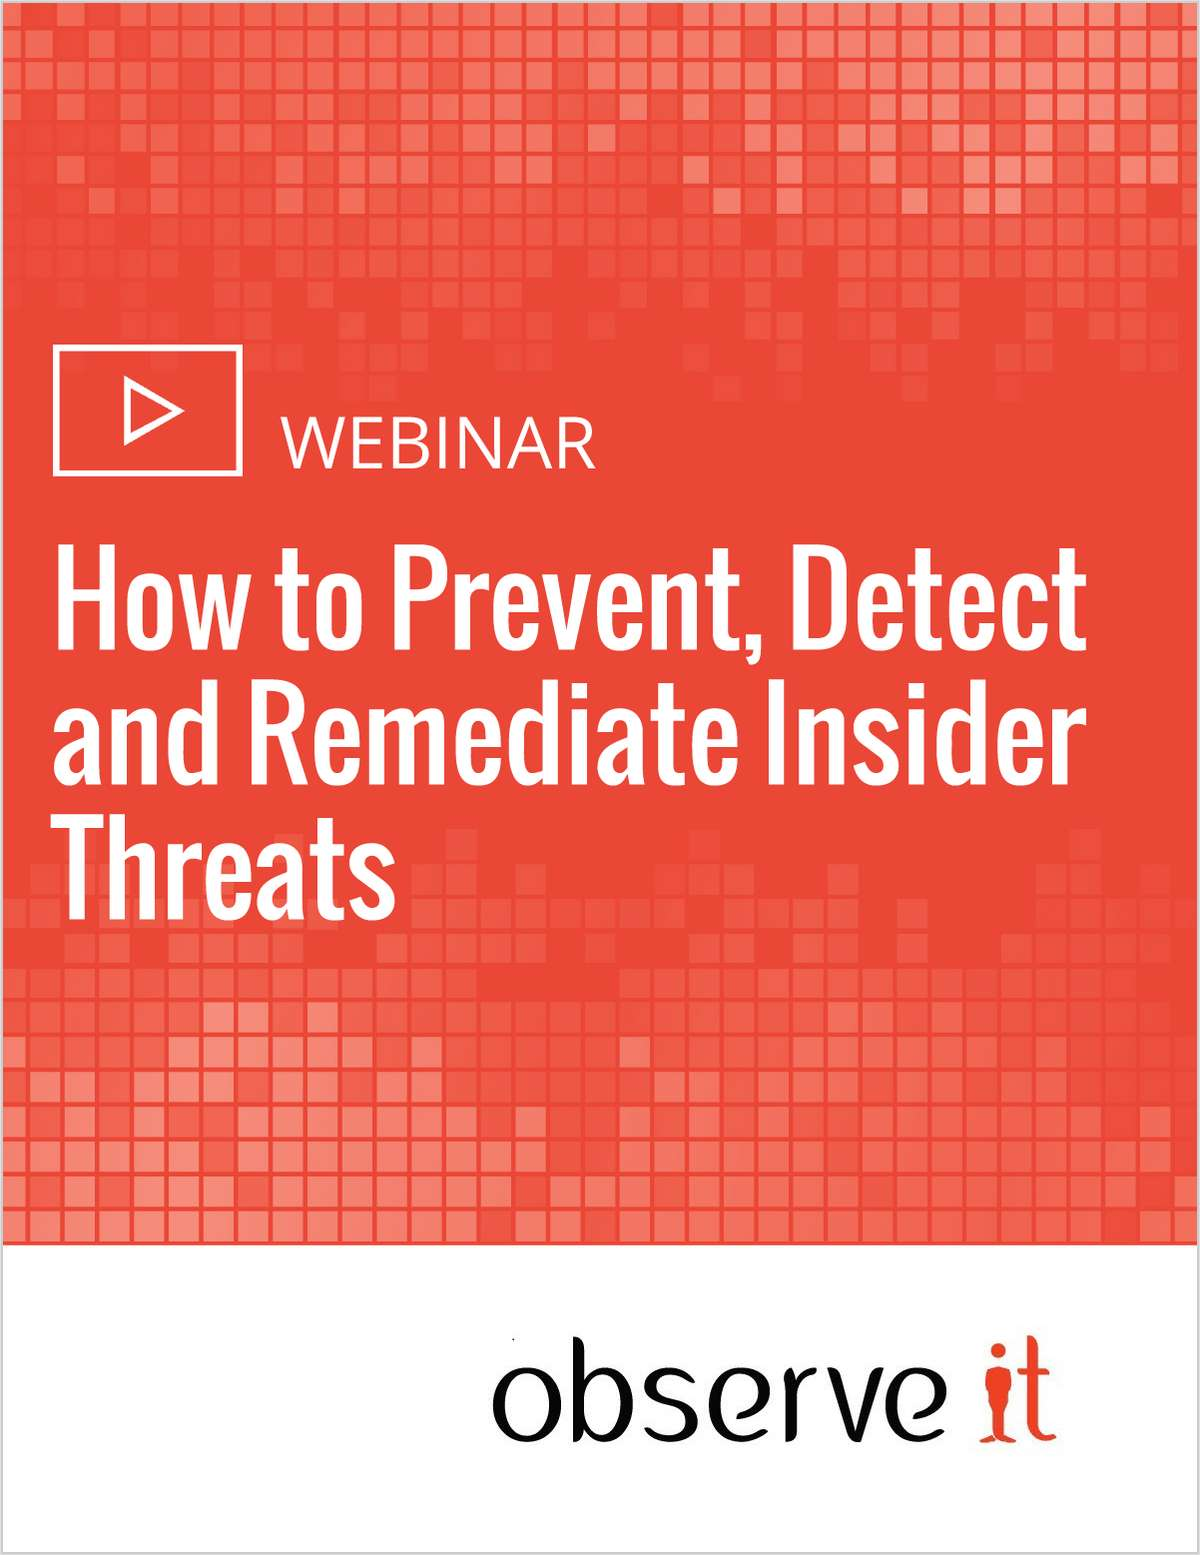 How to Prevent, Detect and Remediate Insider Threats